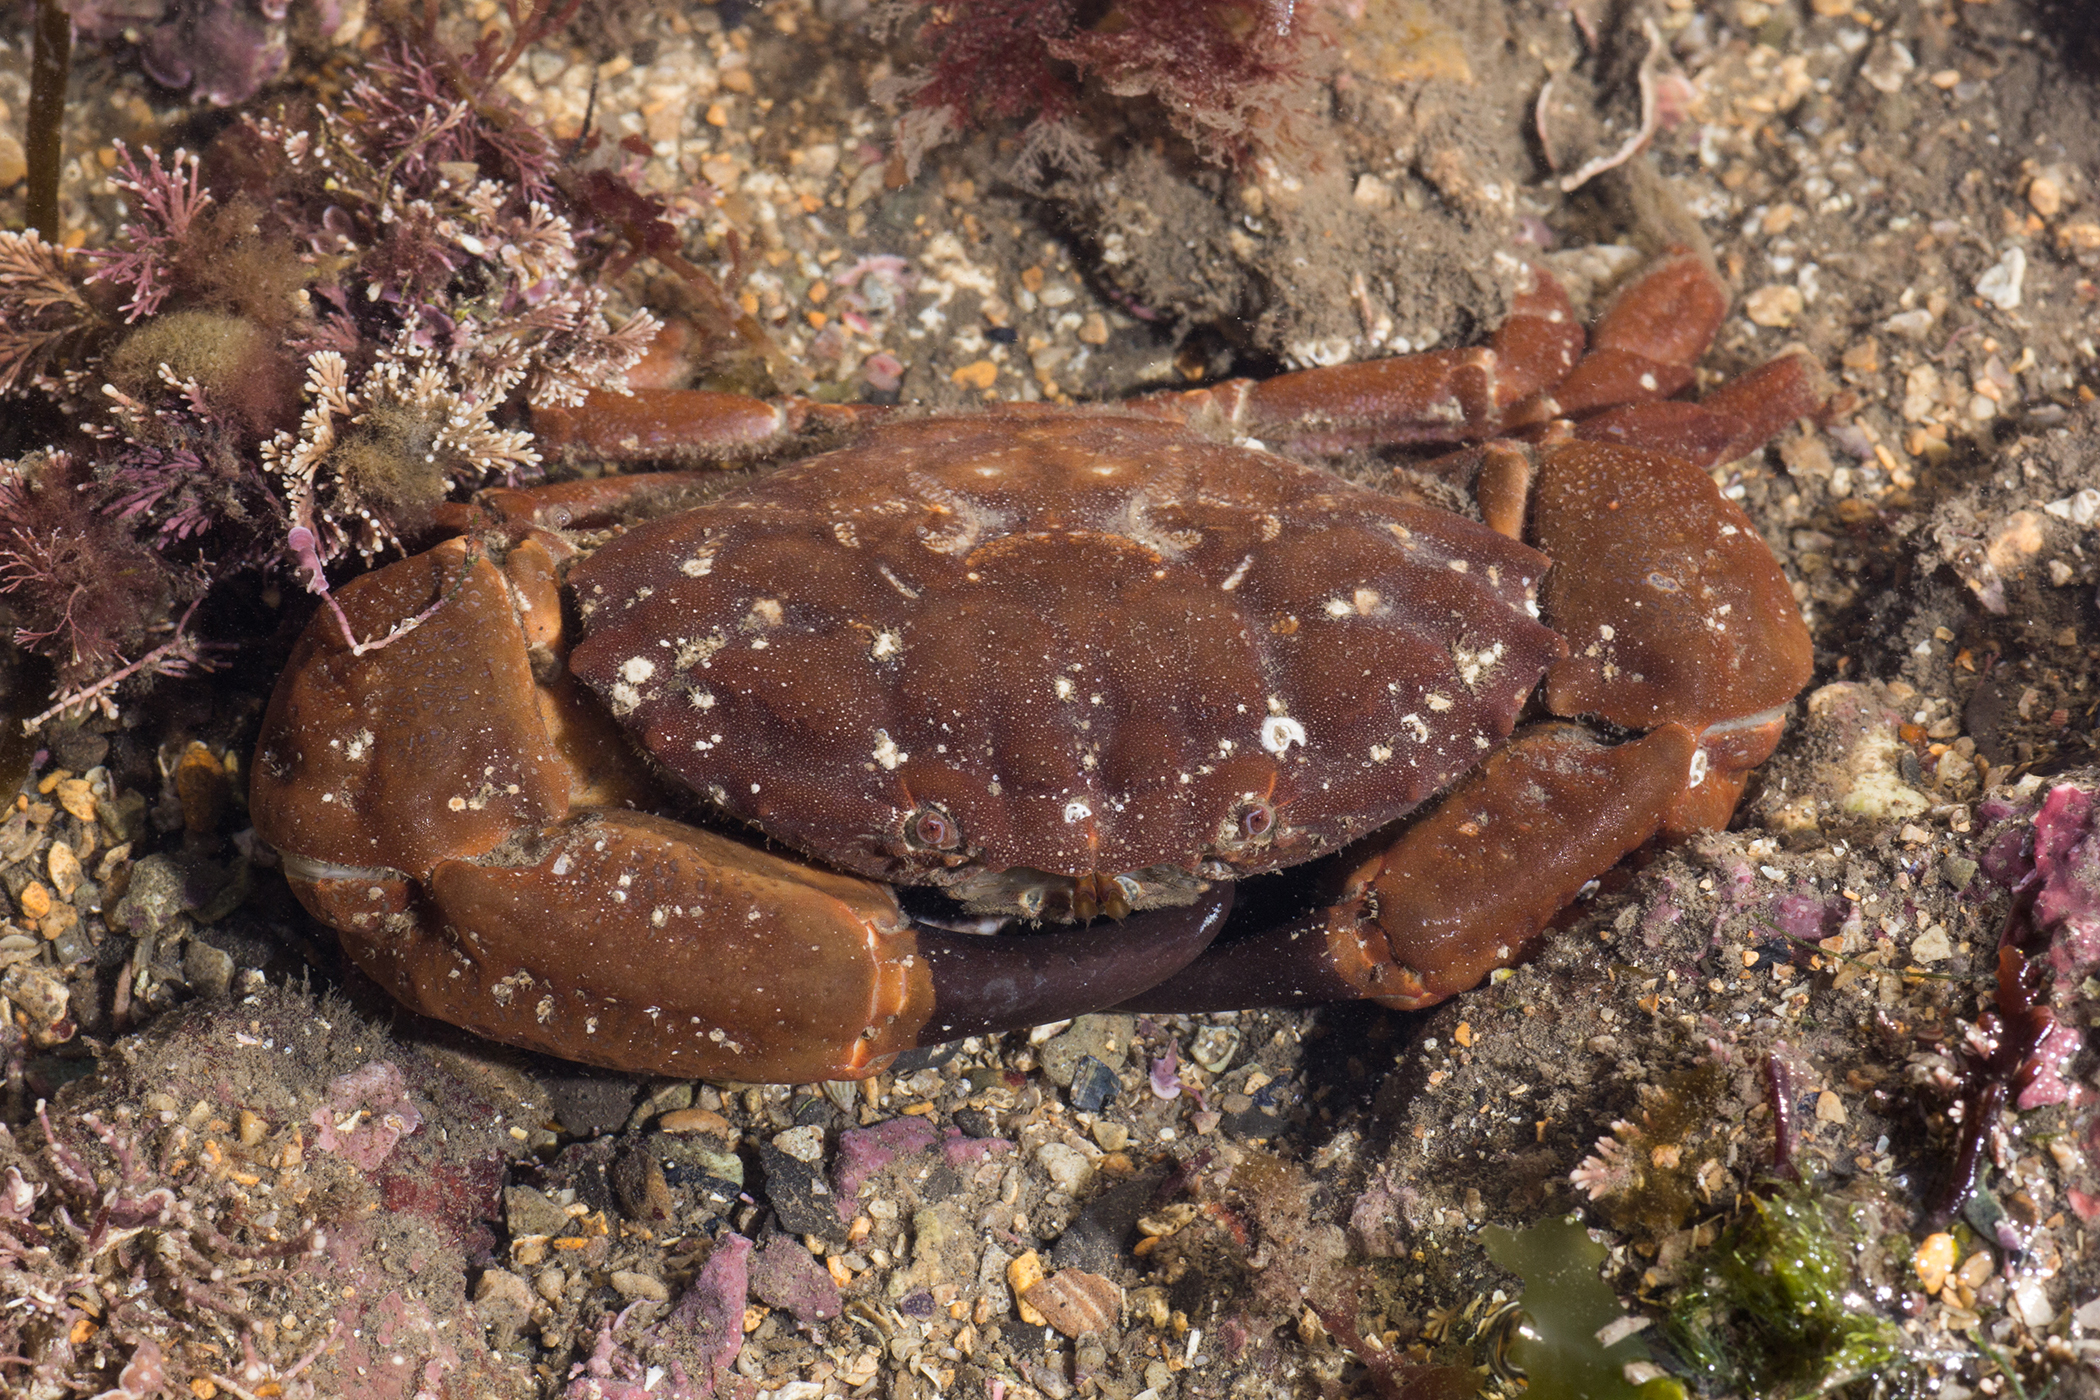 Why this crab spotted in Dorset is an 'indicator of climate change'